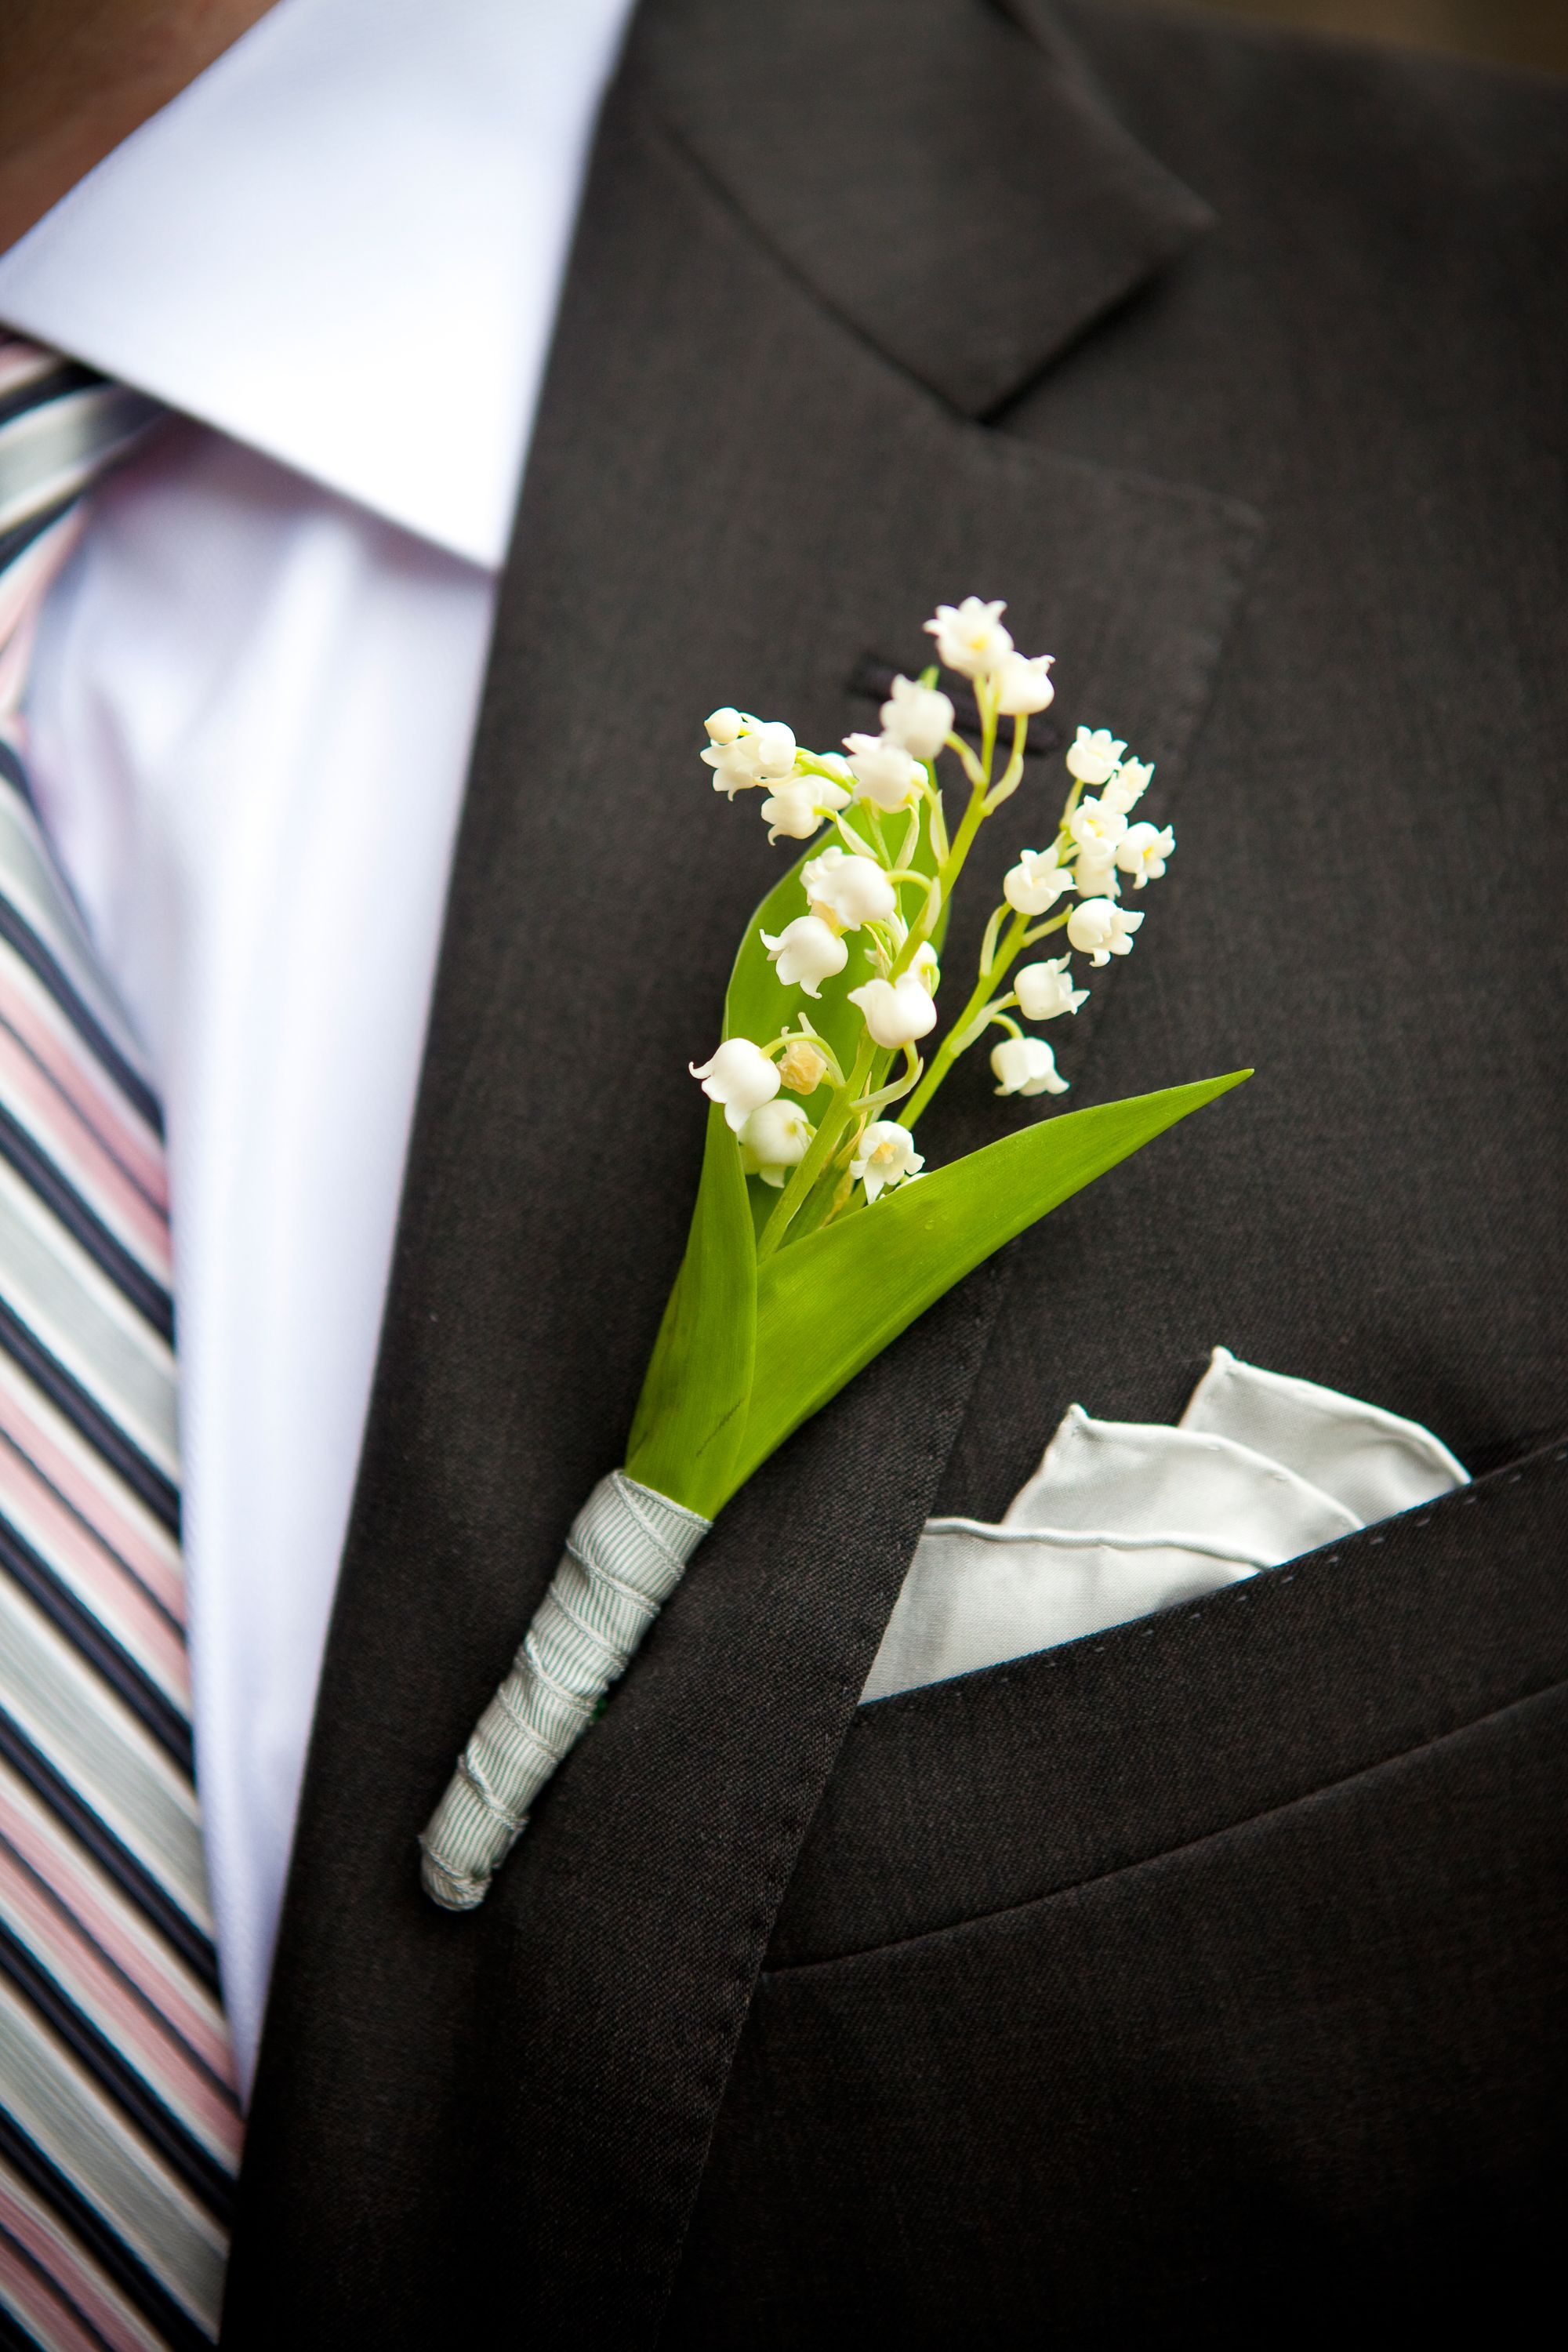 Lily of the valley boutonniere kathi littwin photography theknot lily of the valley boutonniere kathi littwin photography theknot izmirmasajfo